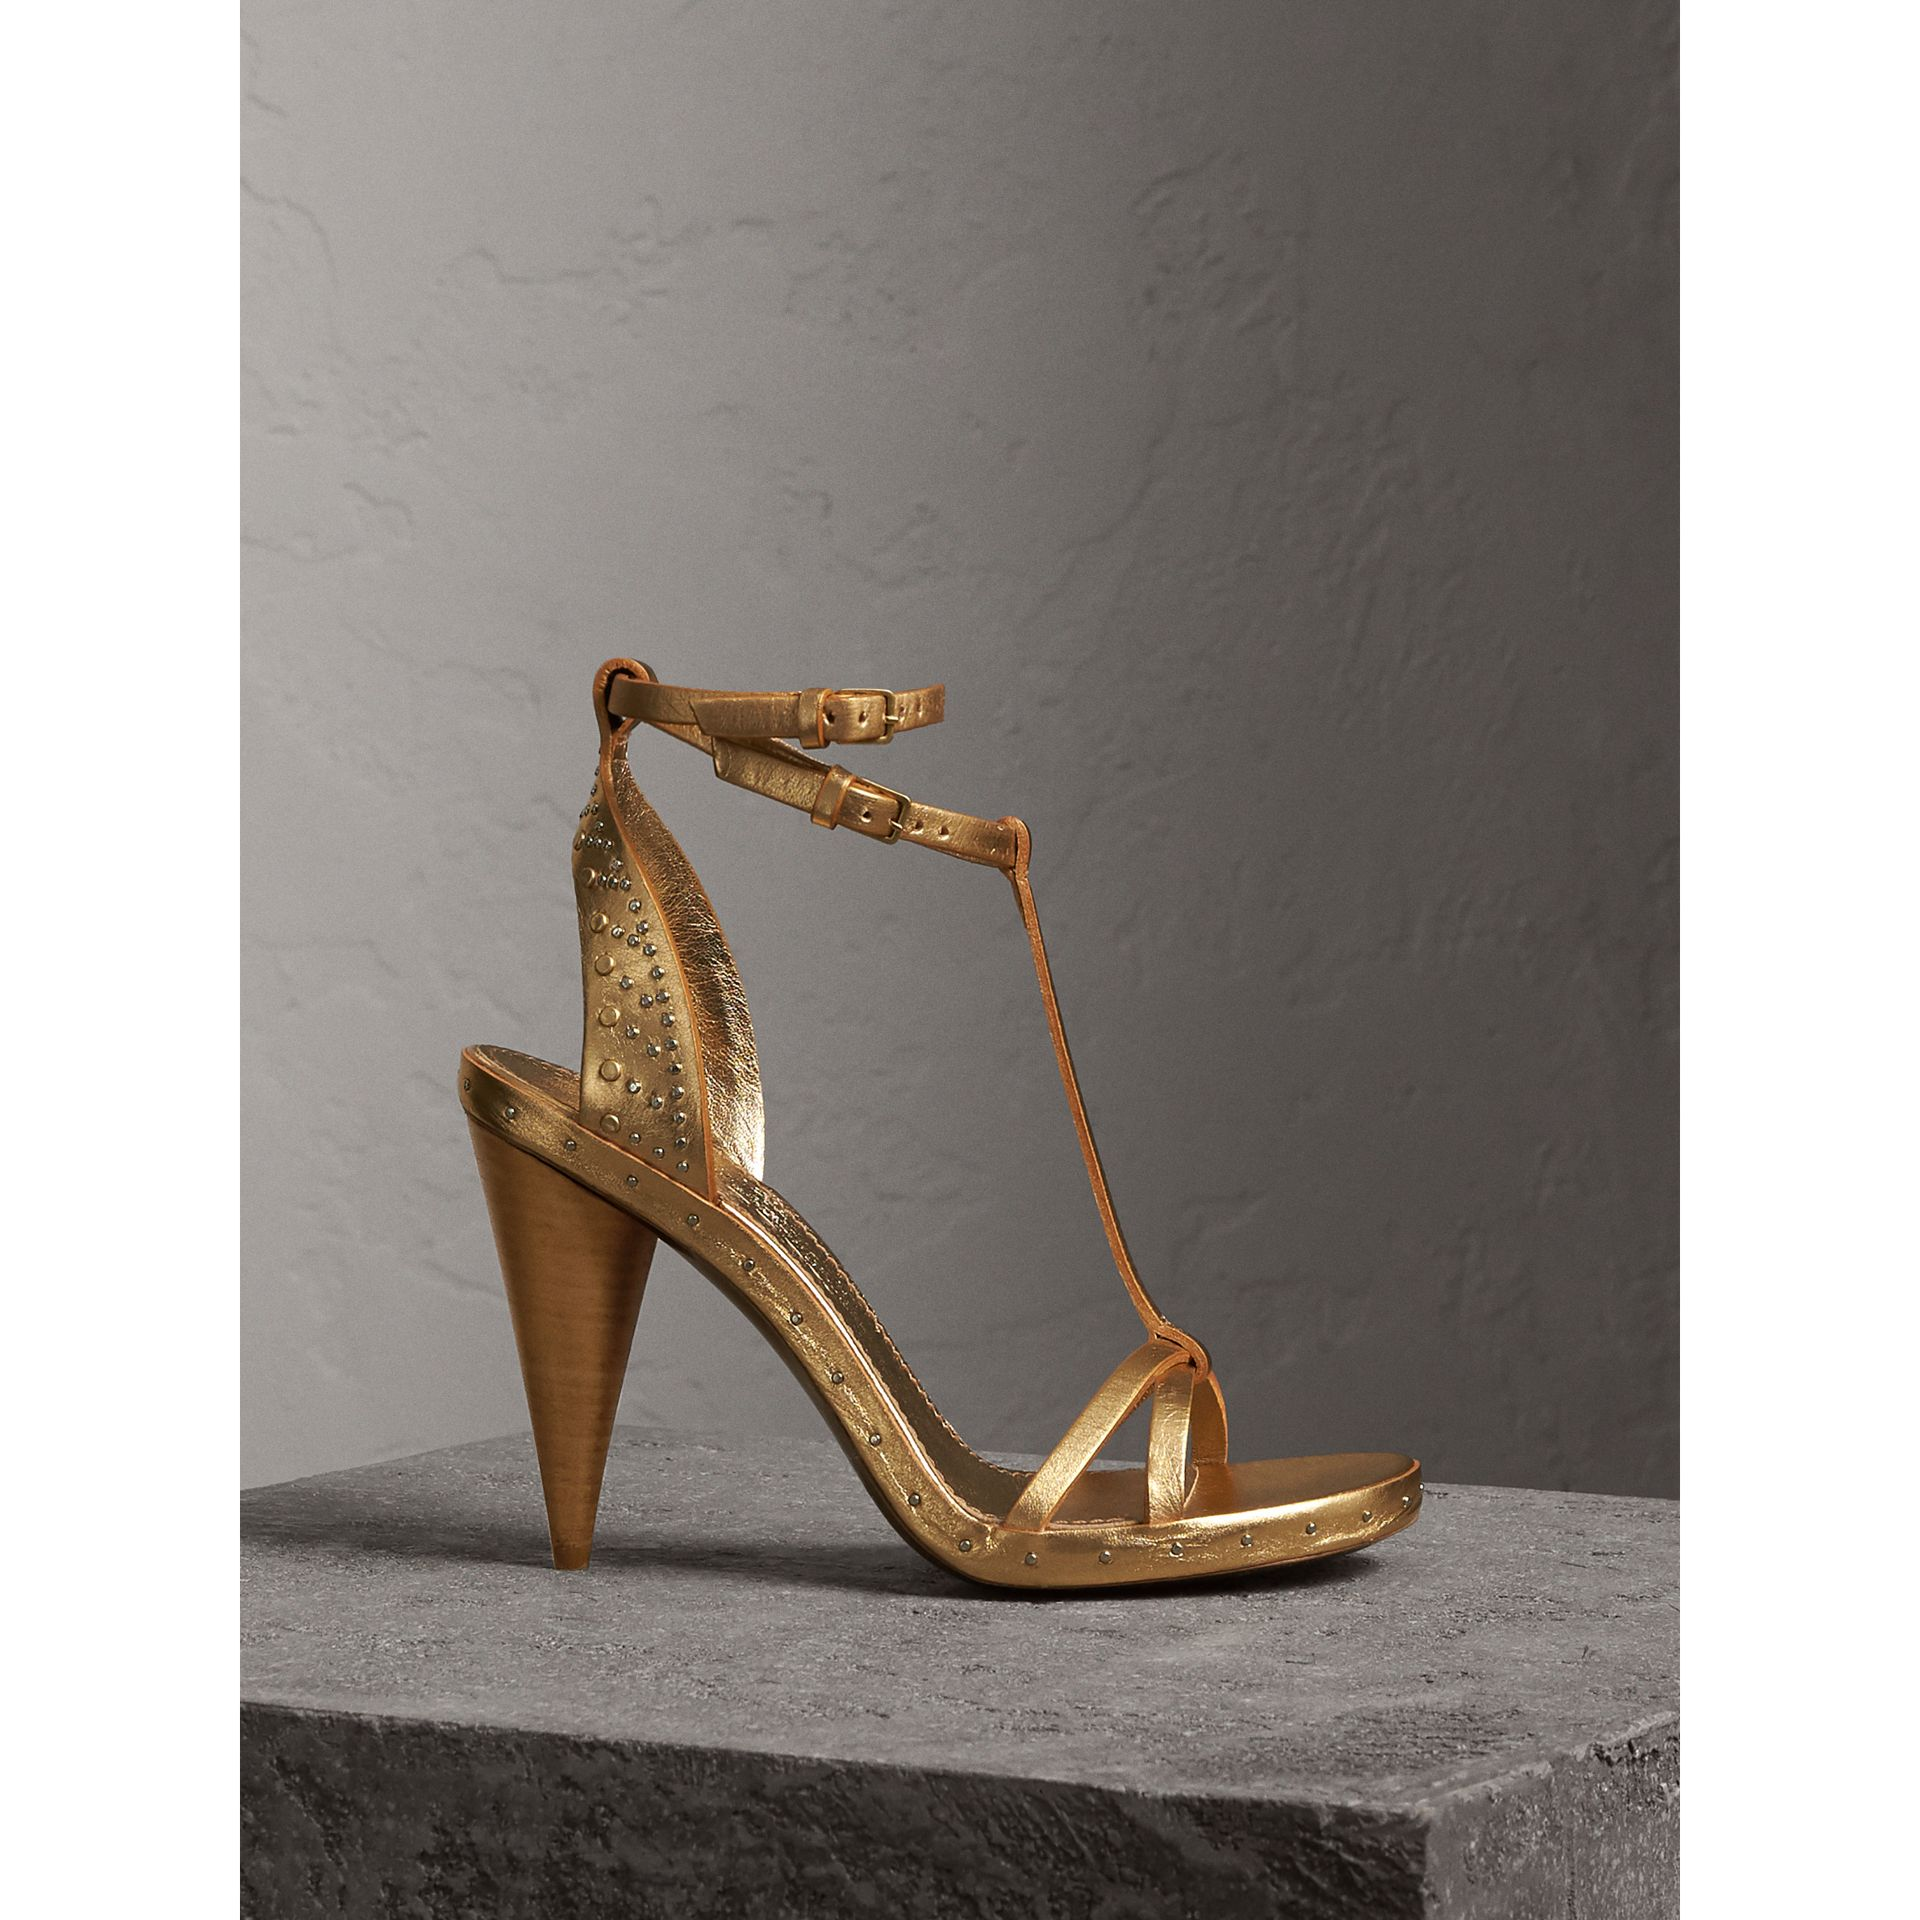 Riveted Metallic Leather High Cone-heel Sandals in Gold | Burberry United Kingdom - gallery image 0